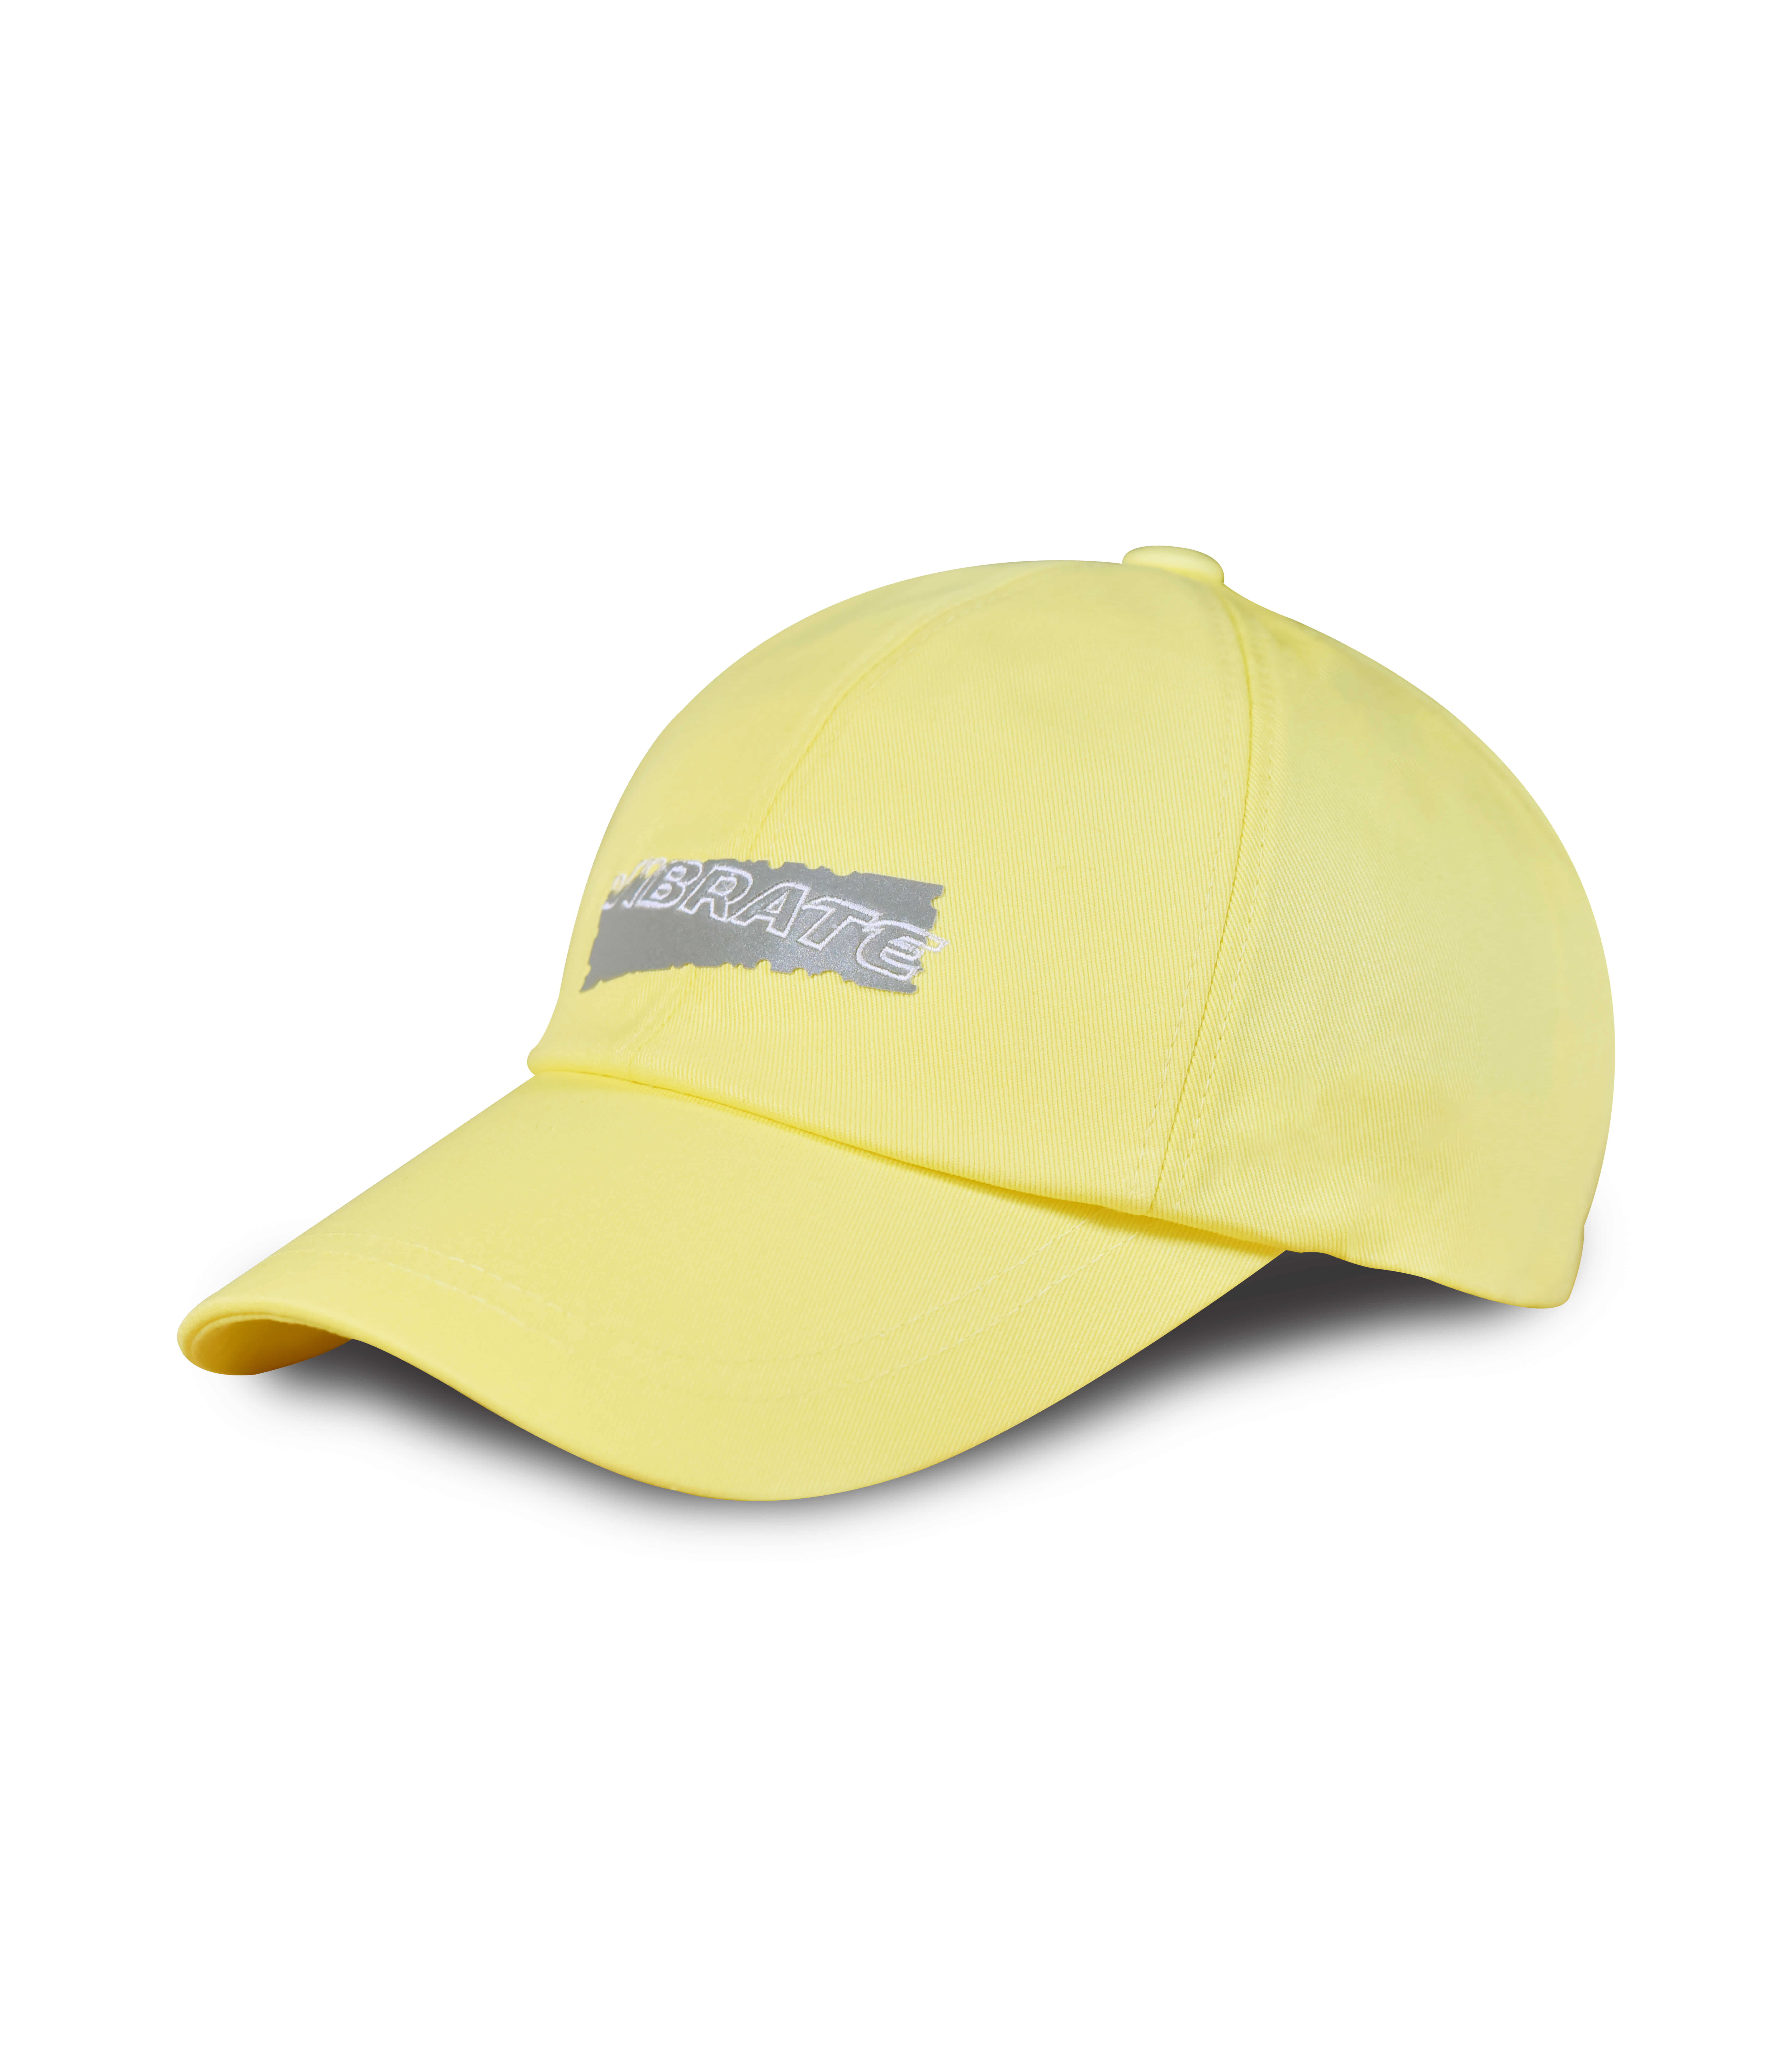 SCOTCH BALL CAP (LEMON YELLOW)